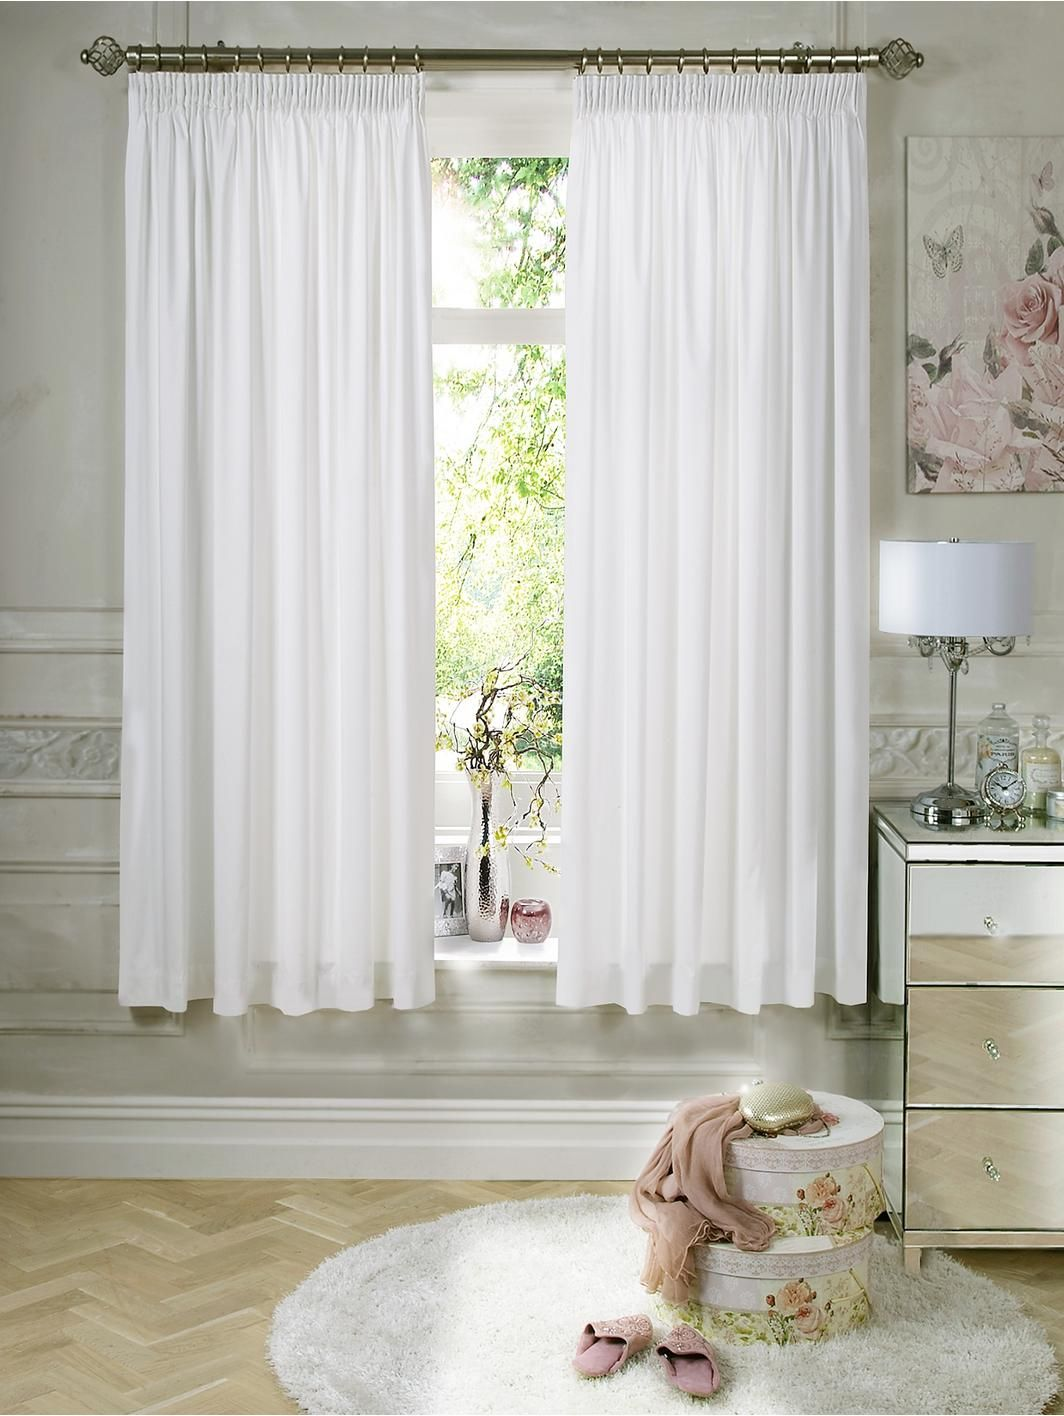 Thermal Curtains Short Length 137cm So As Not To Cover The Radiator Each Curtain 168cm Wide